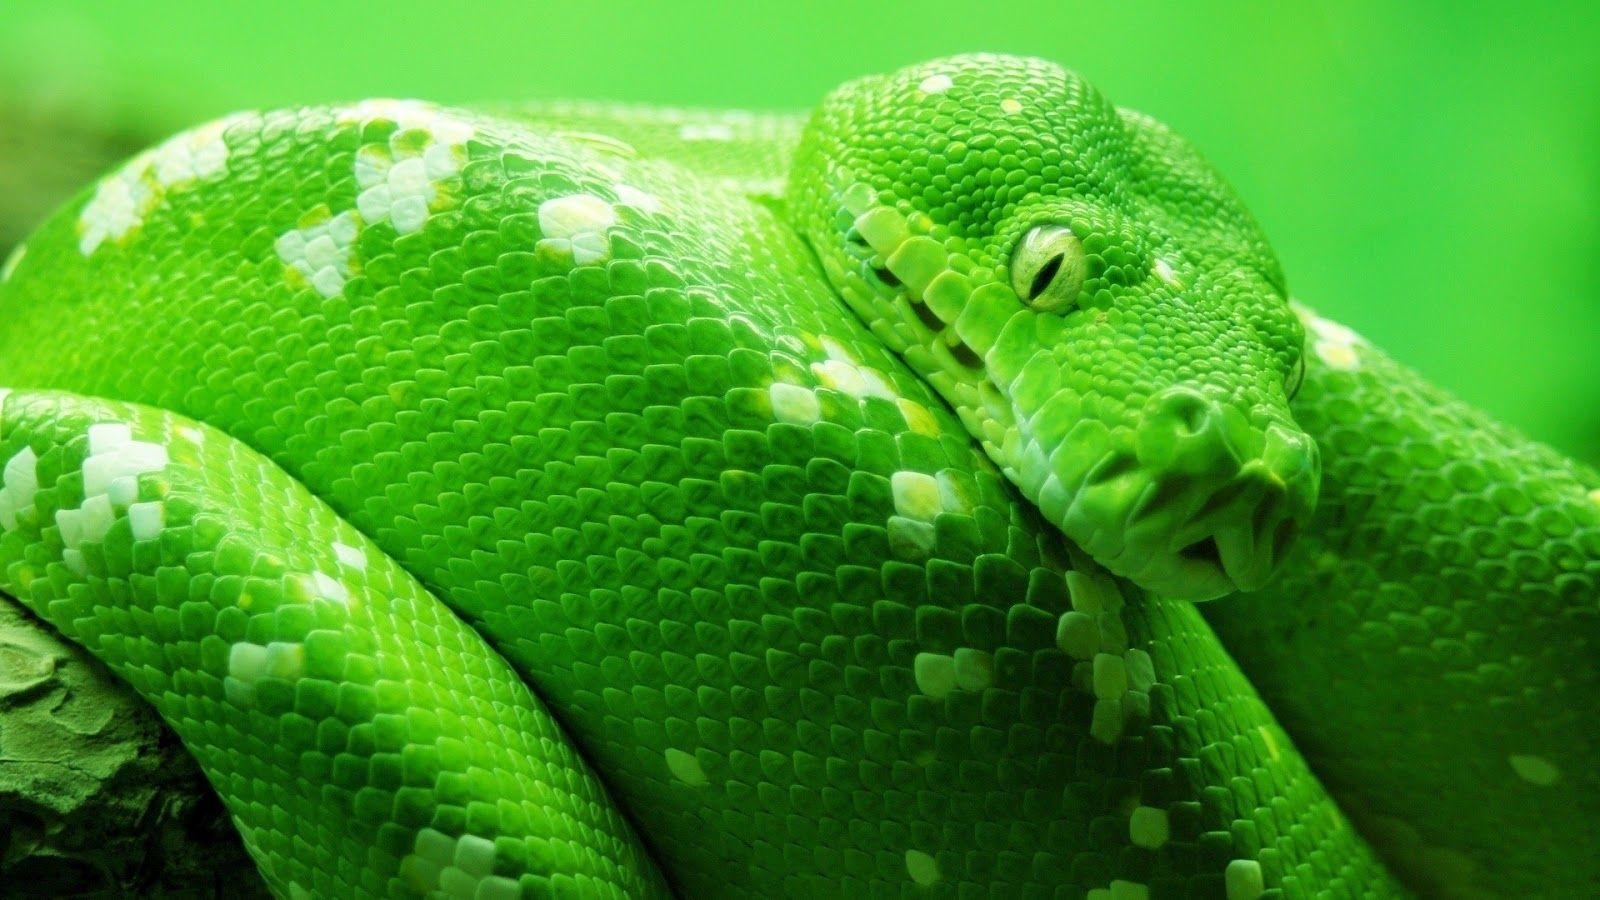 Snake HD Wallpapers Background Images Wallpaper